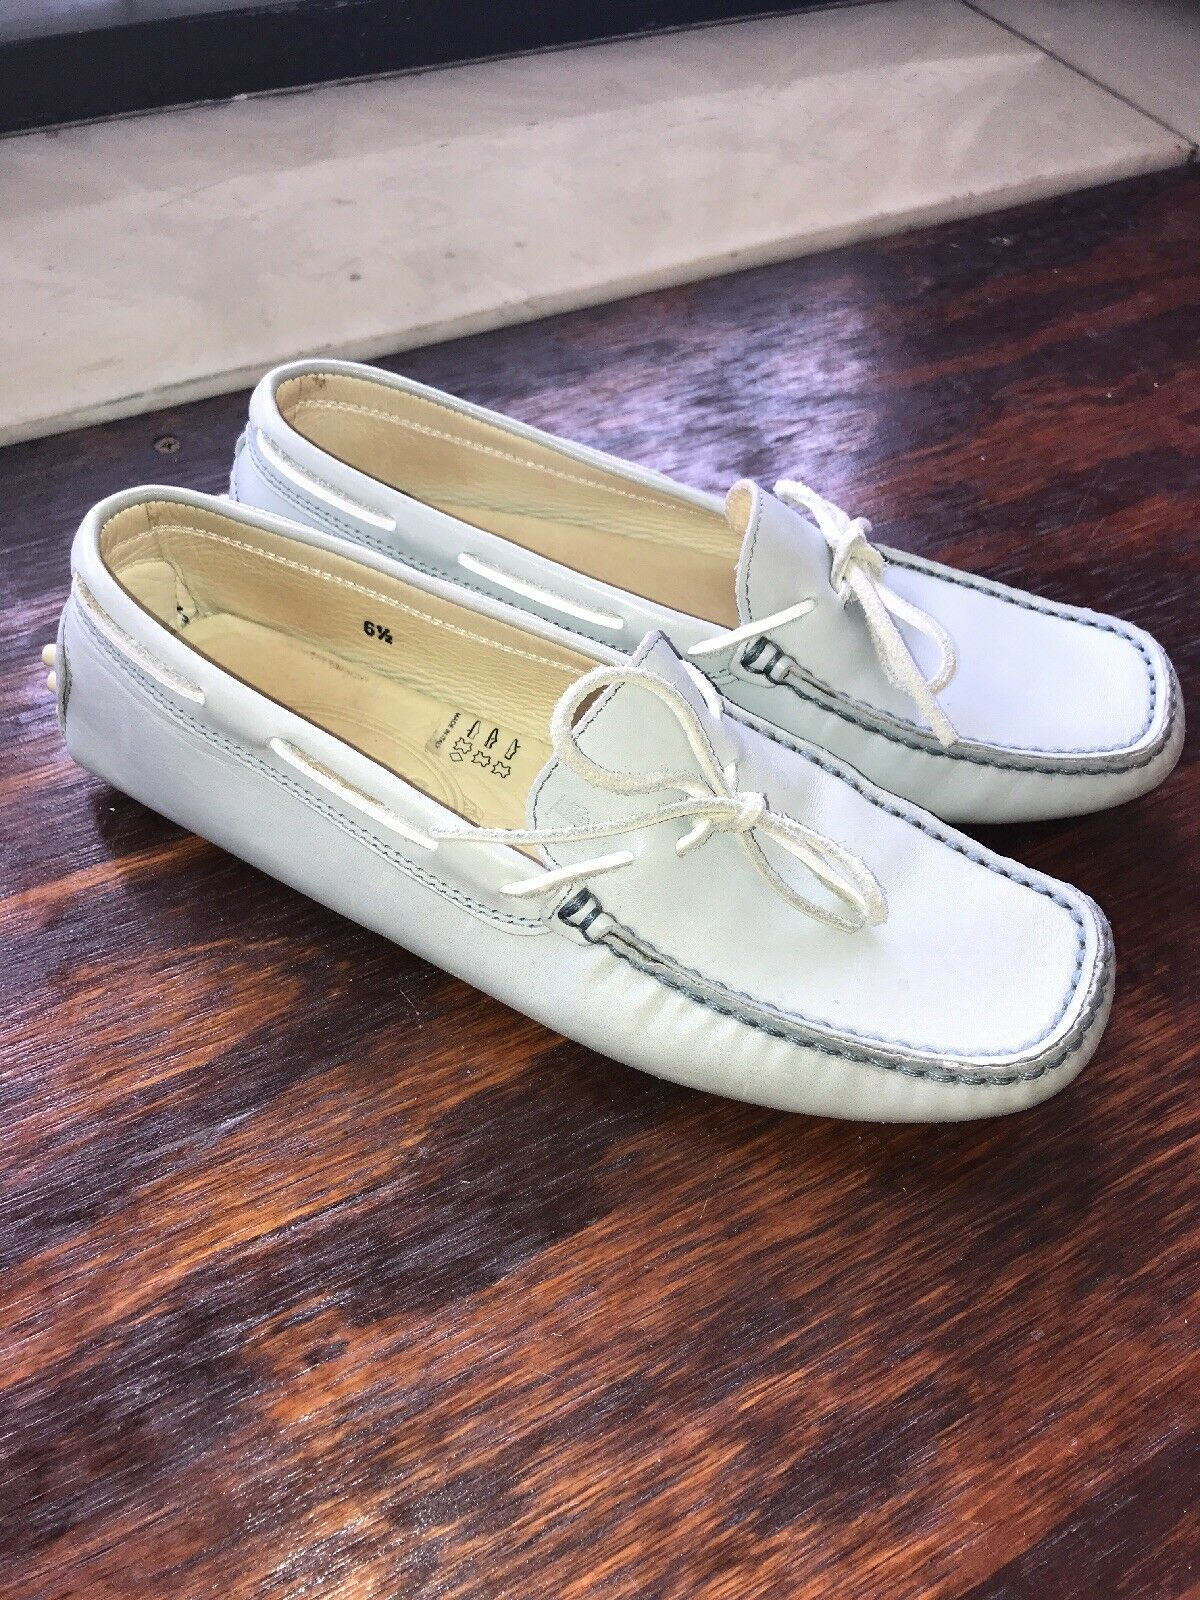 Tod's Light blu Leather Driving Loafers, 6.5